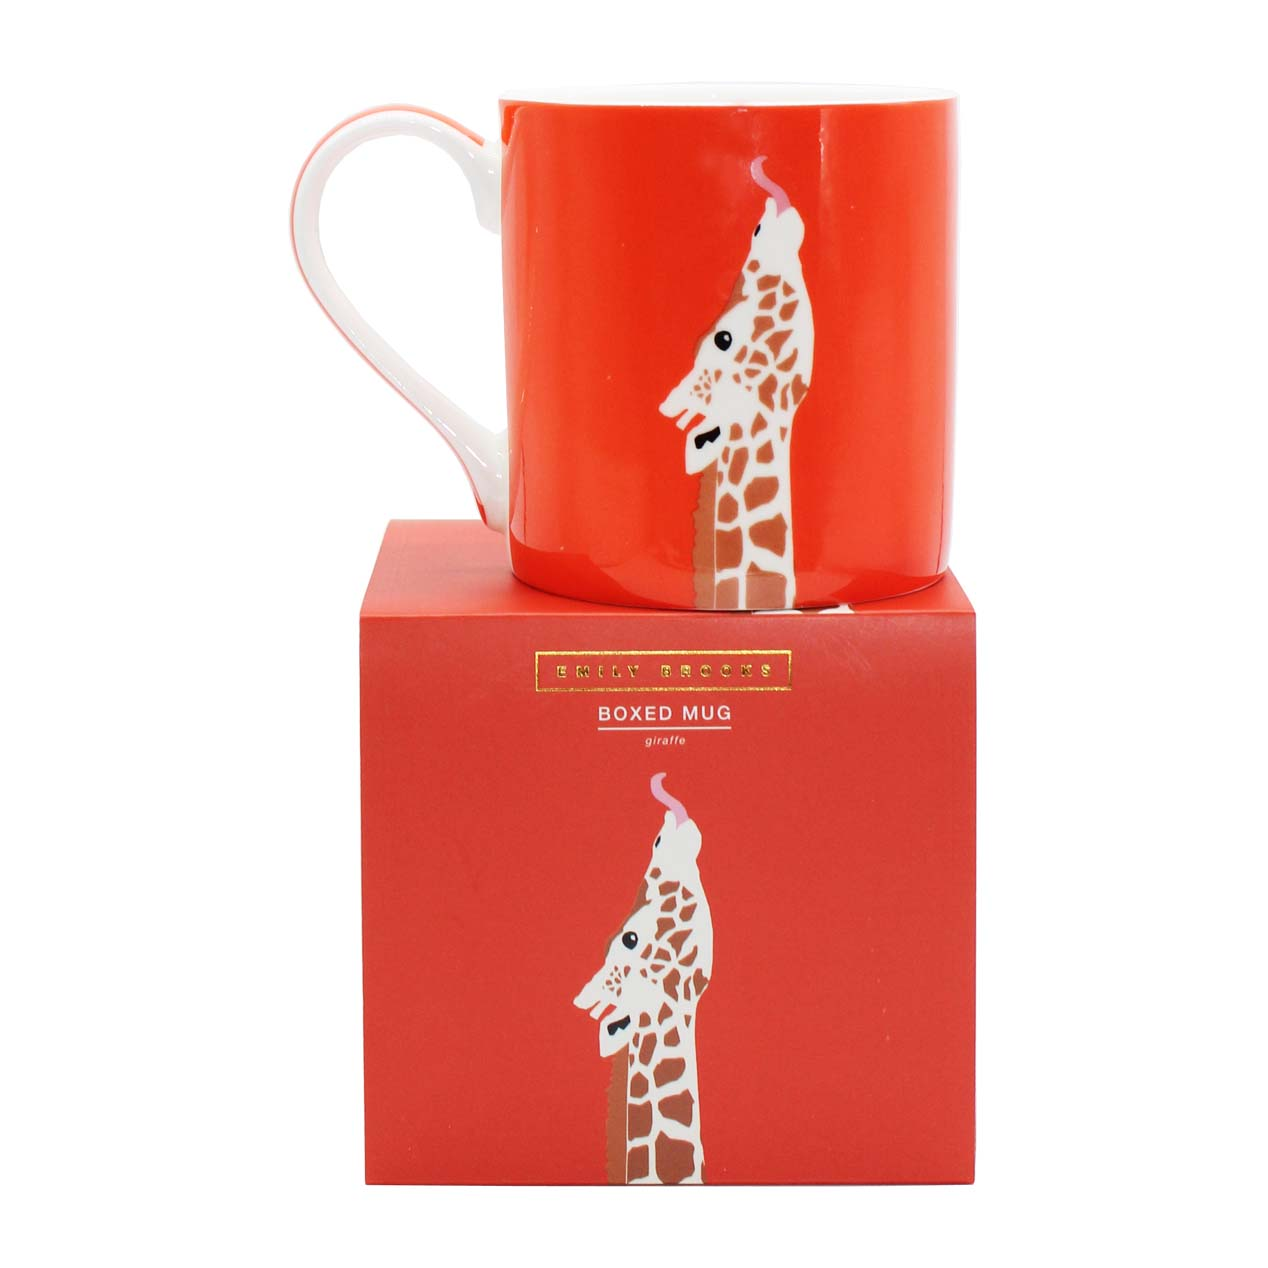 Emily Brooks Boxed Mug Giraffe Sparkle Gift